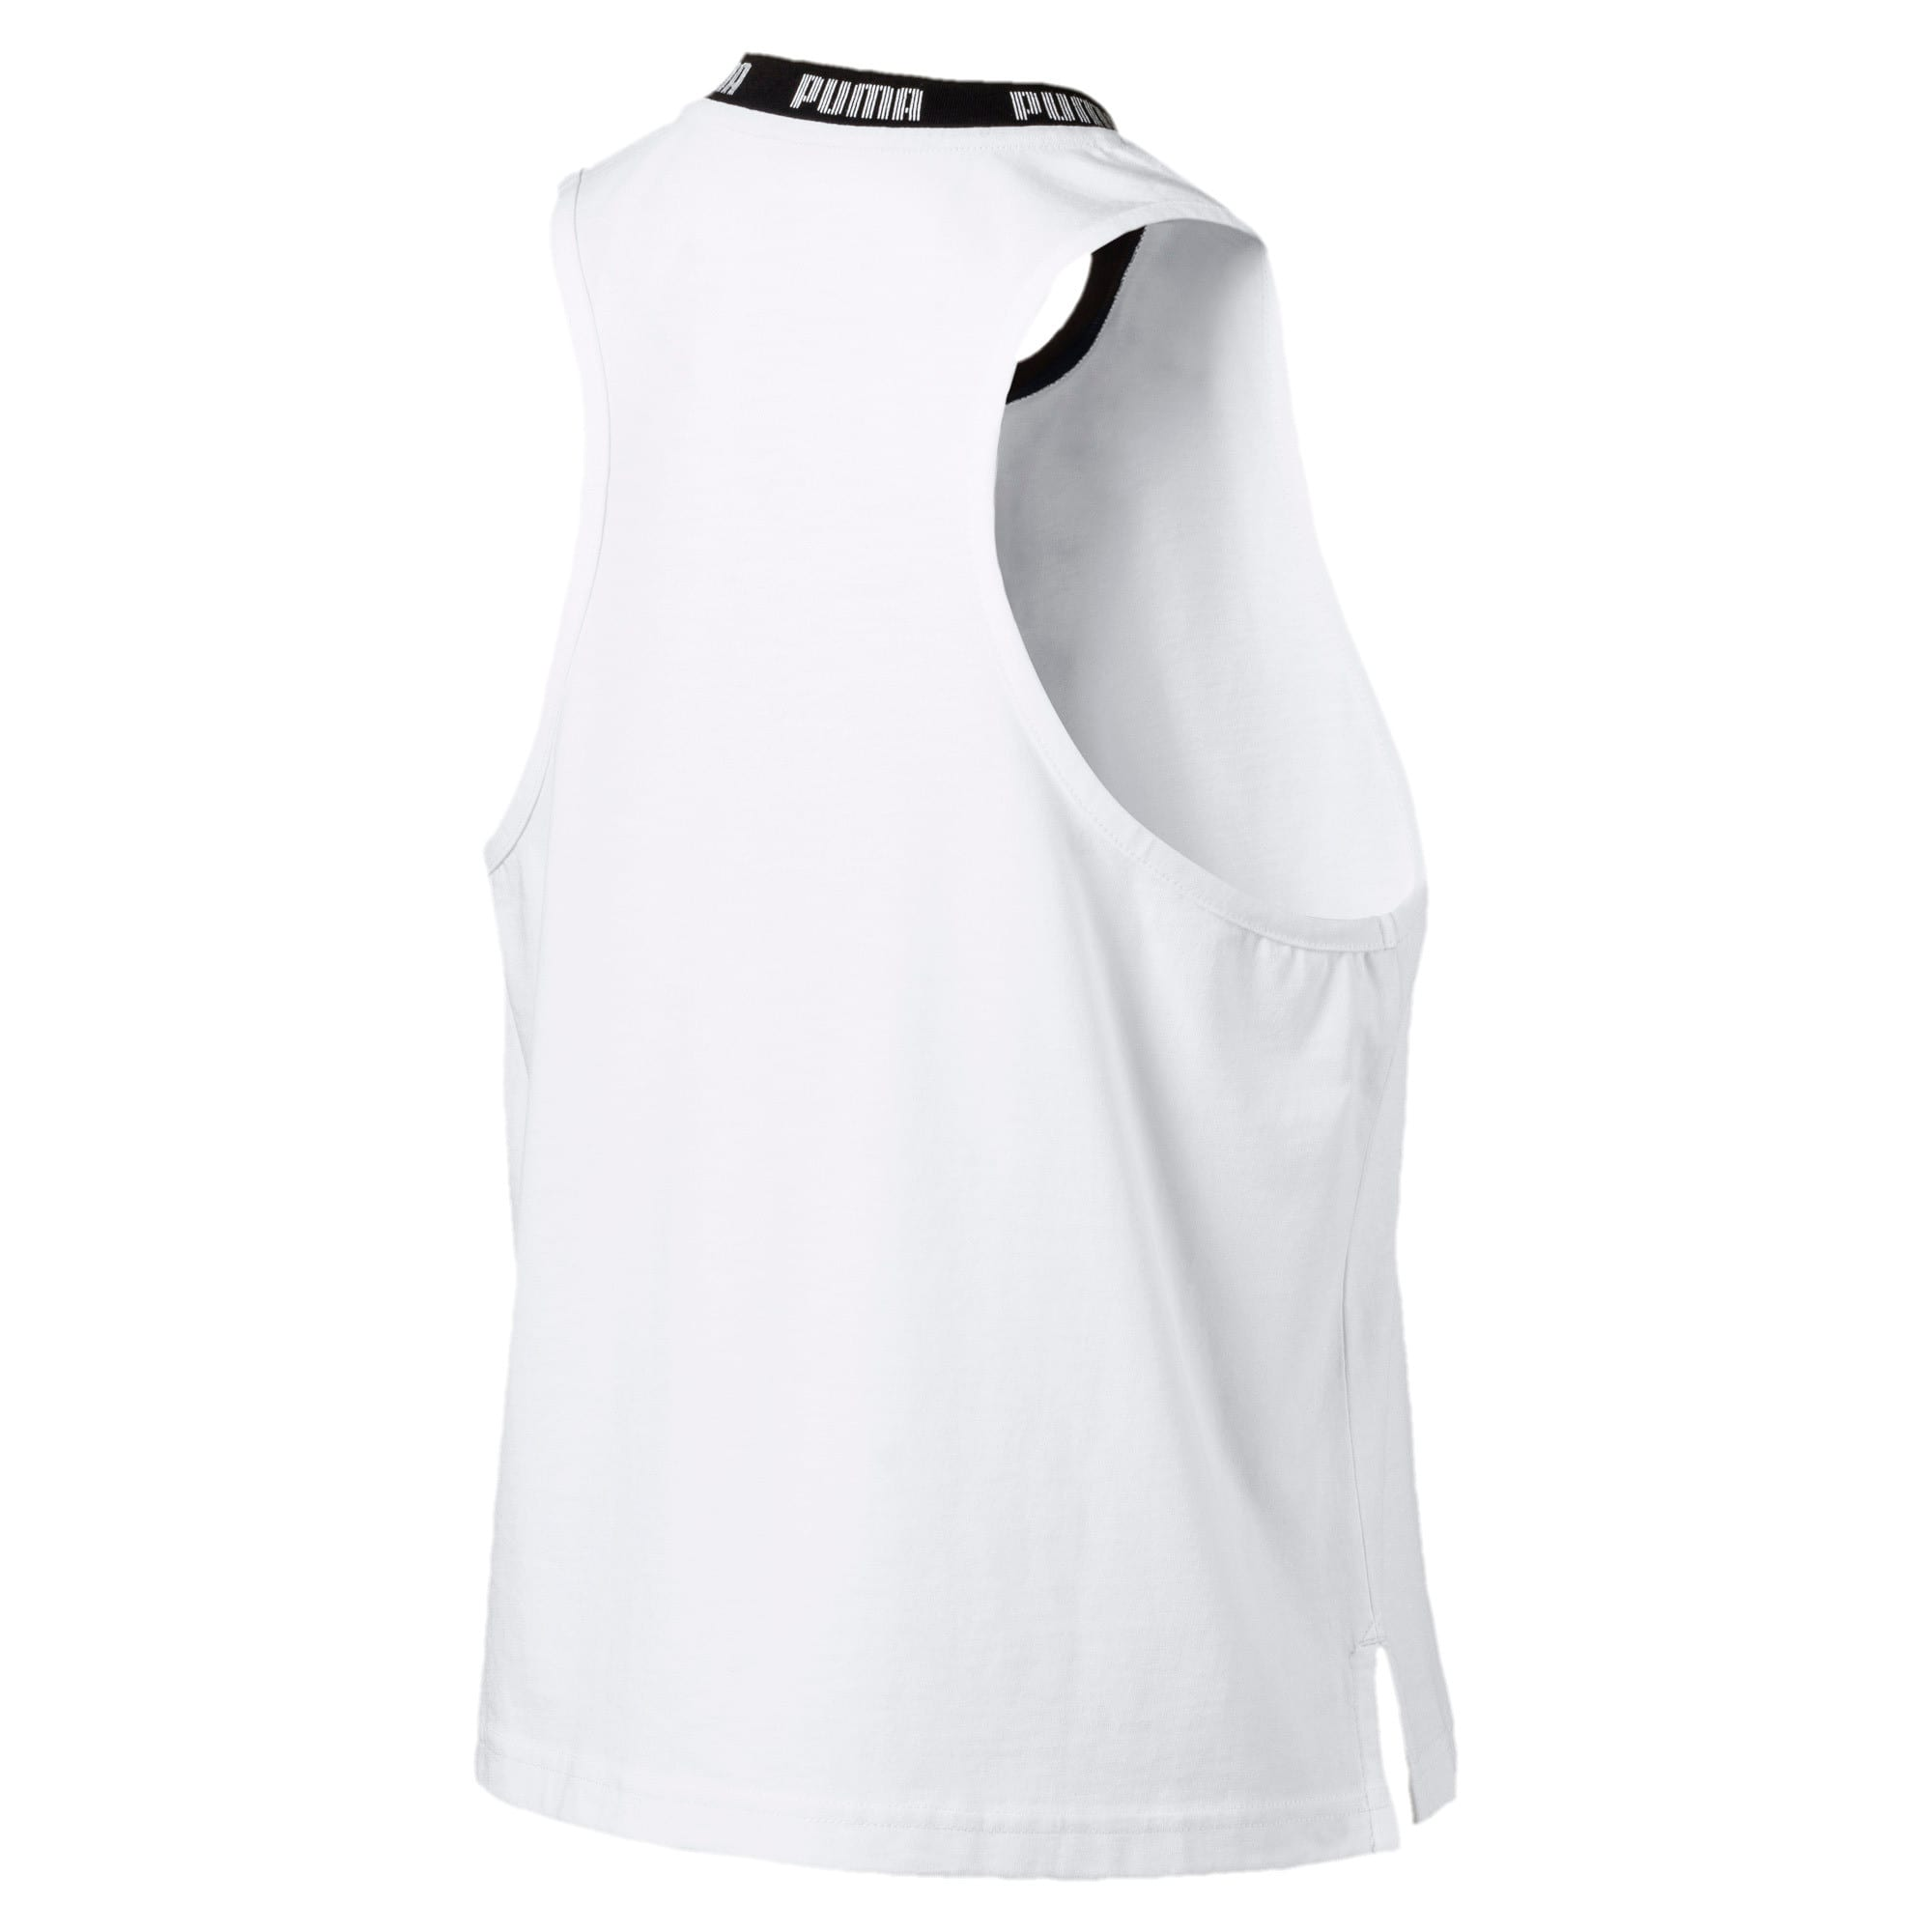 Thumbnail 2 of Amplified Women's Tank Top, Puma White, medium